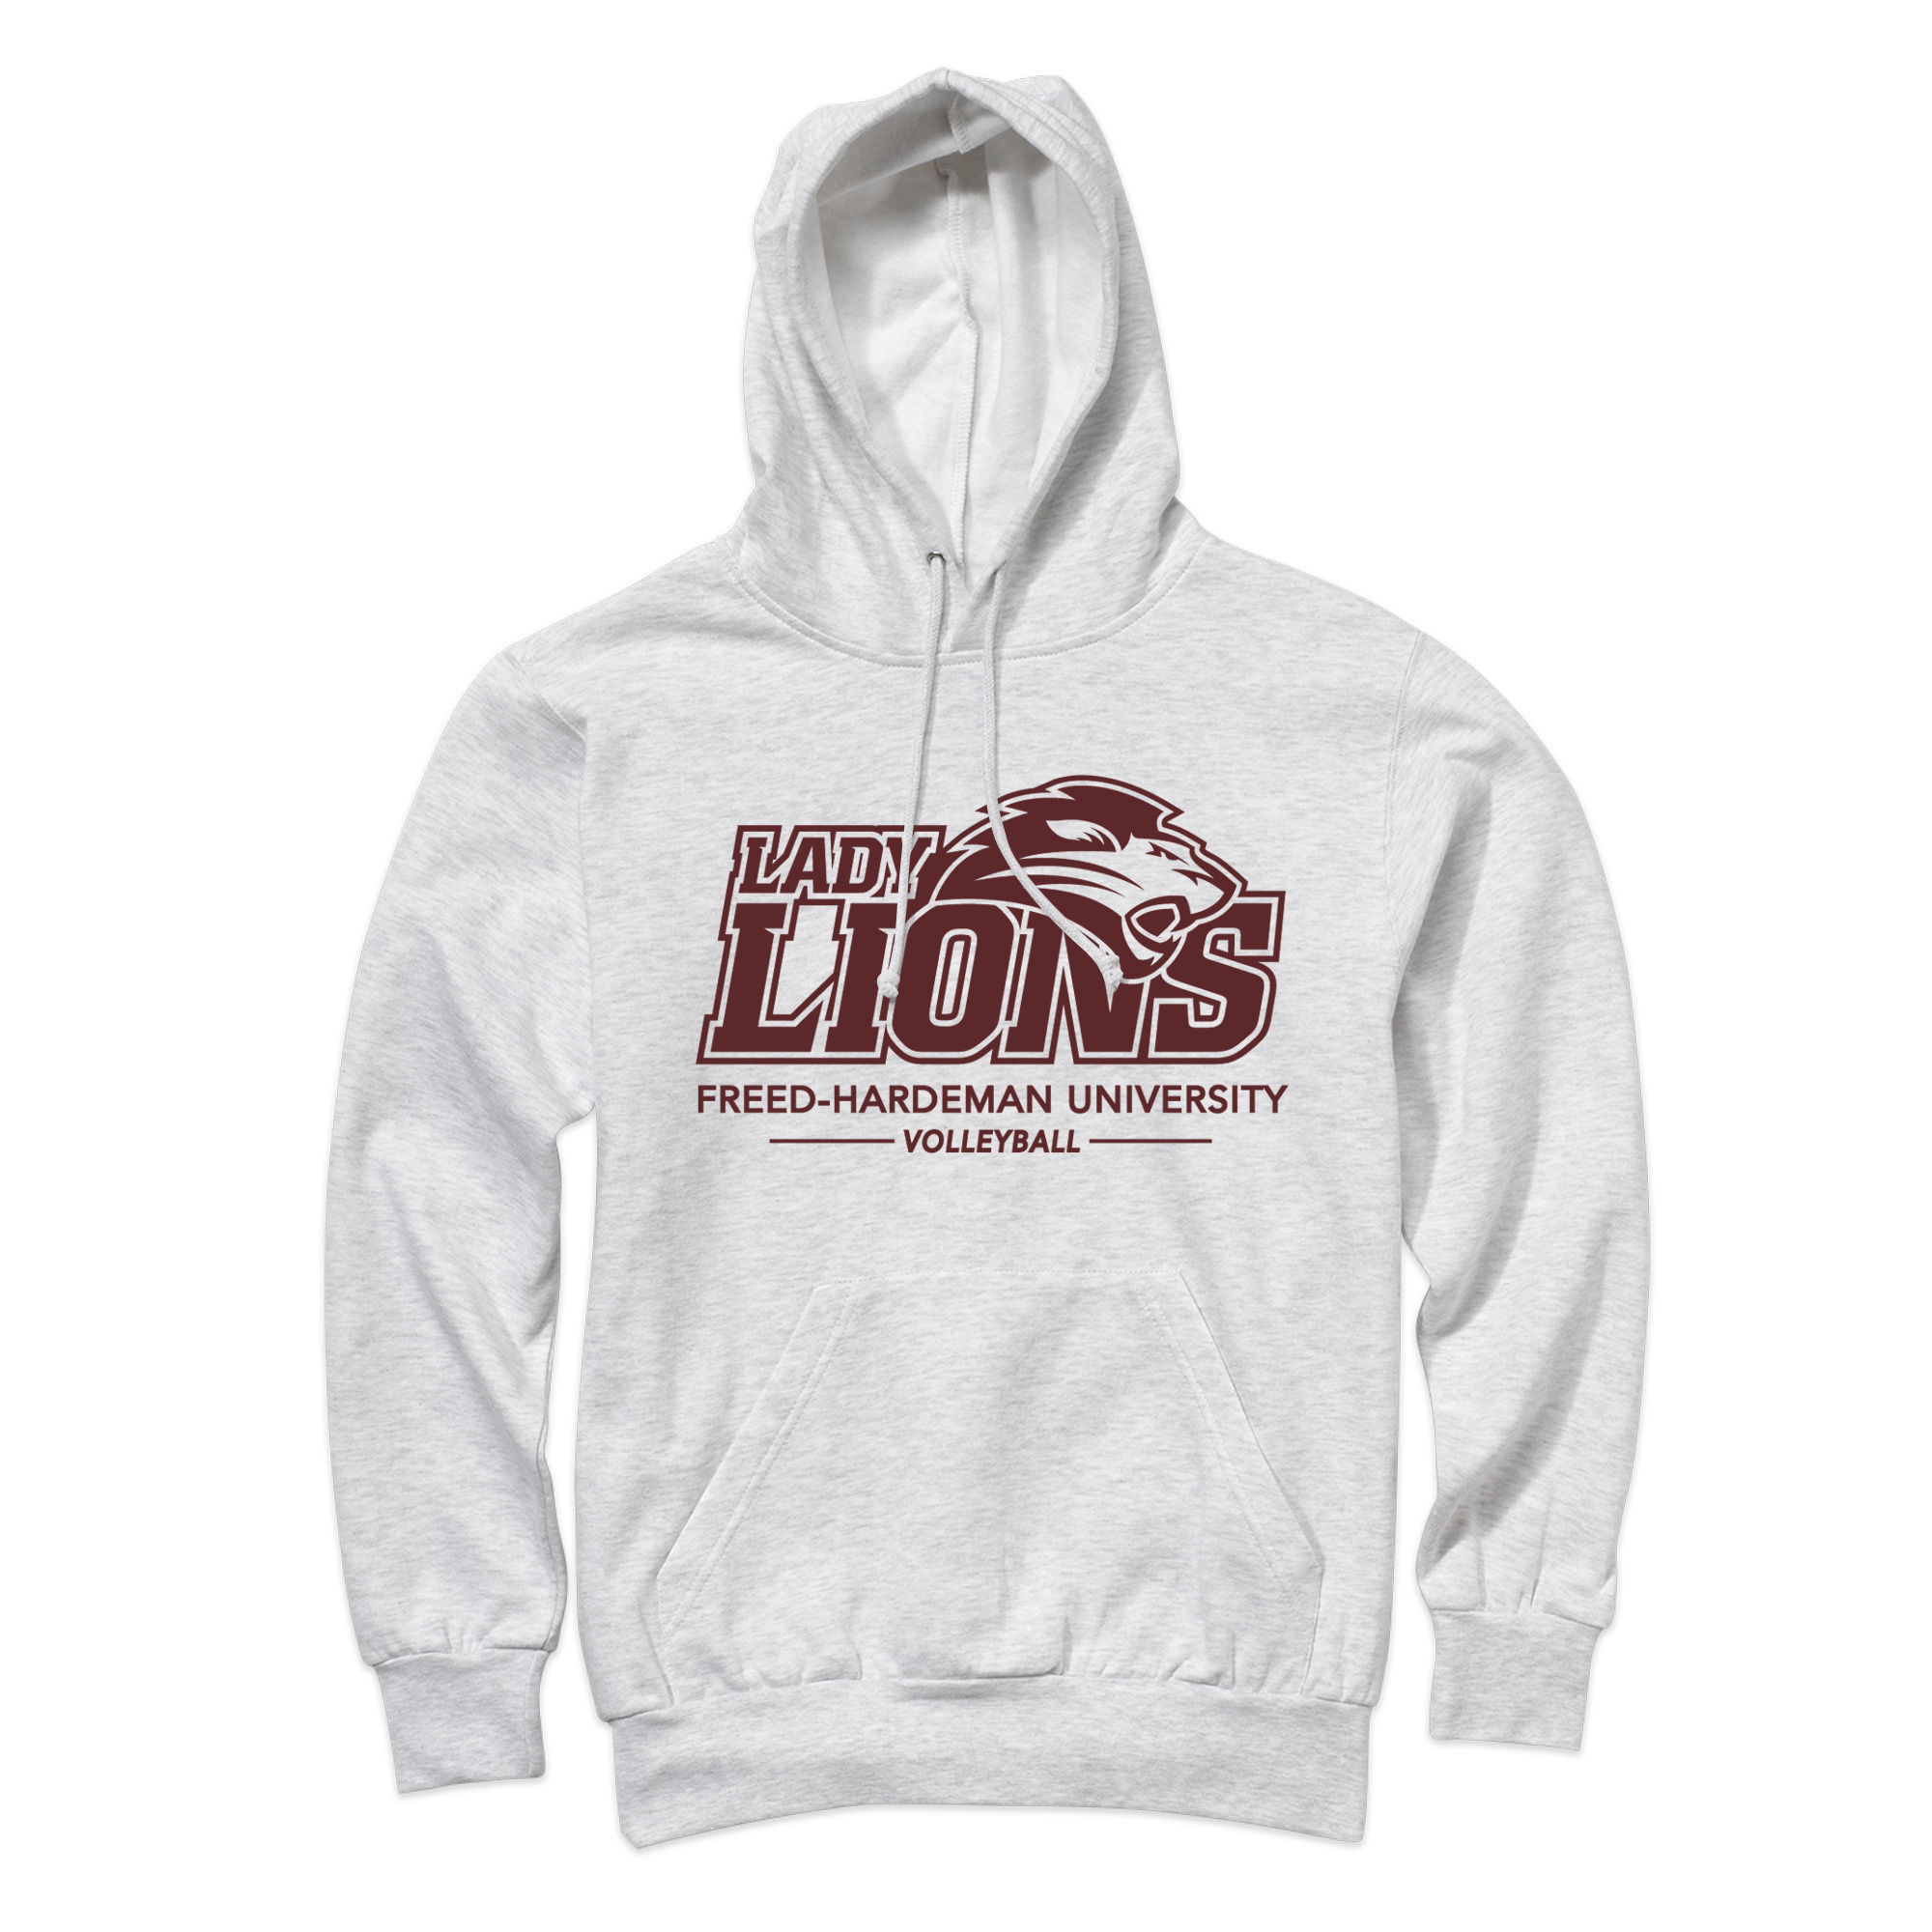 Lady Lions Volleyball Hoodie